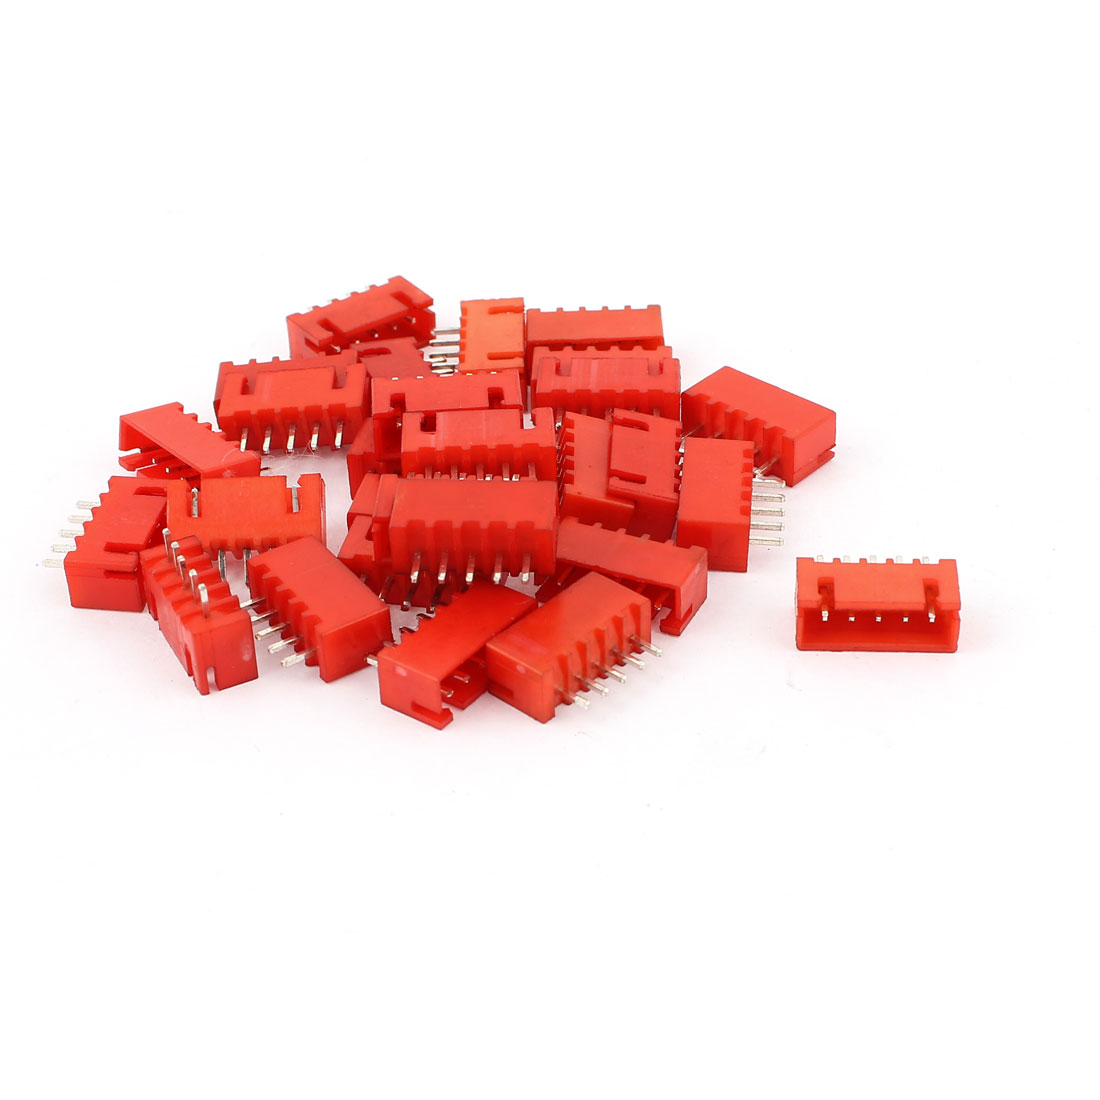 28Pcs 5 Pin 2mm Pitch Single Row Straight IDC Pin Headers Red